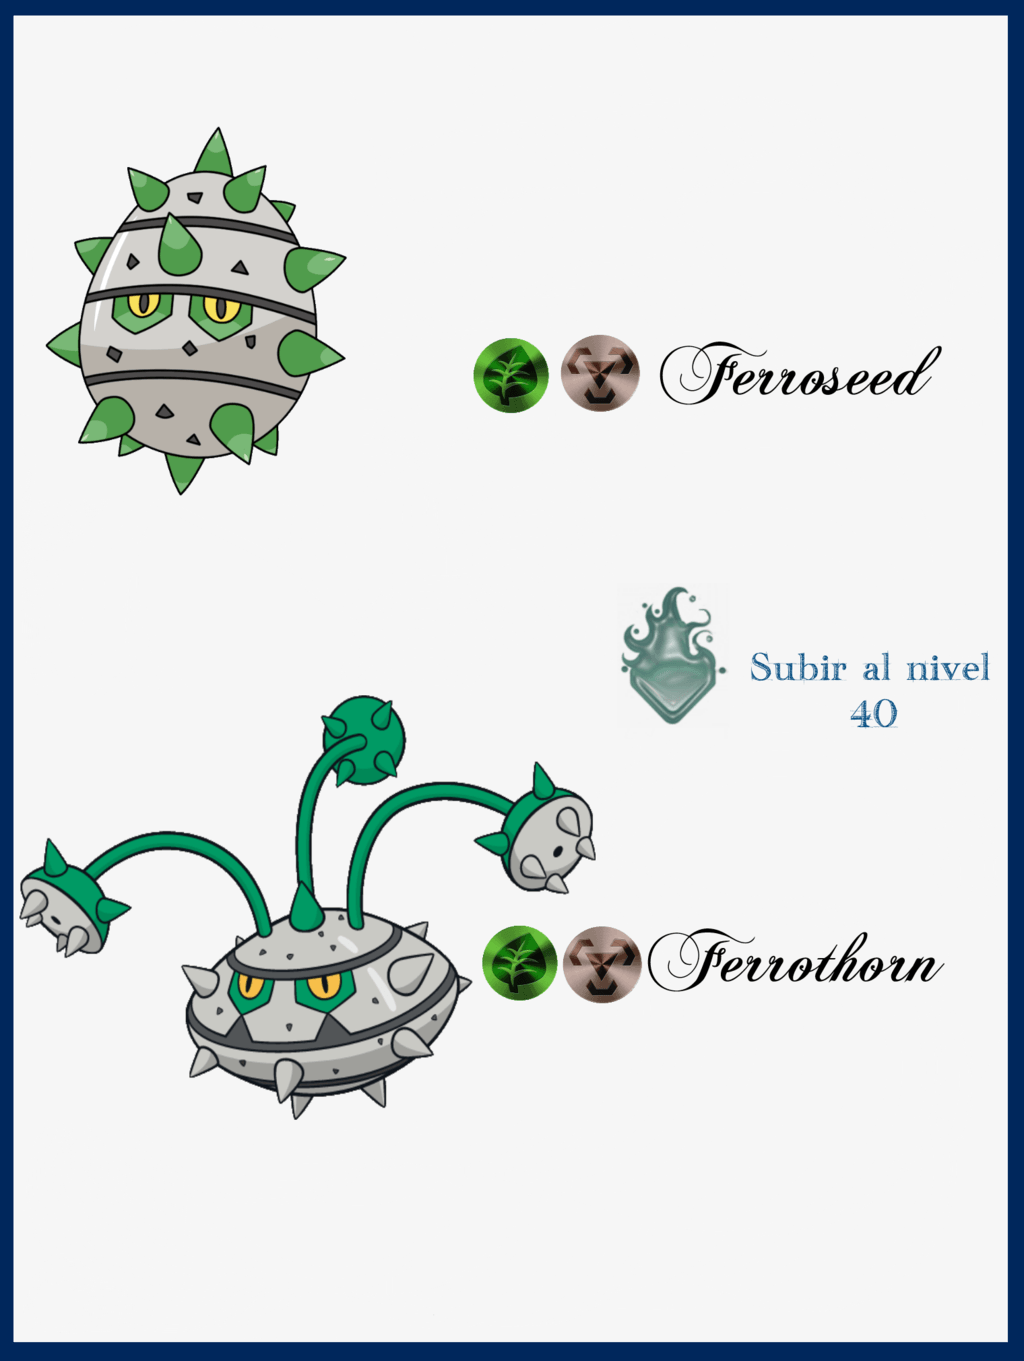 Images of Ferroseed Evolution Chart - #SpaceHero